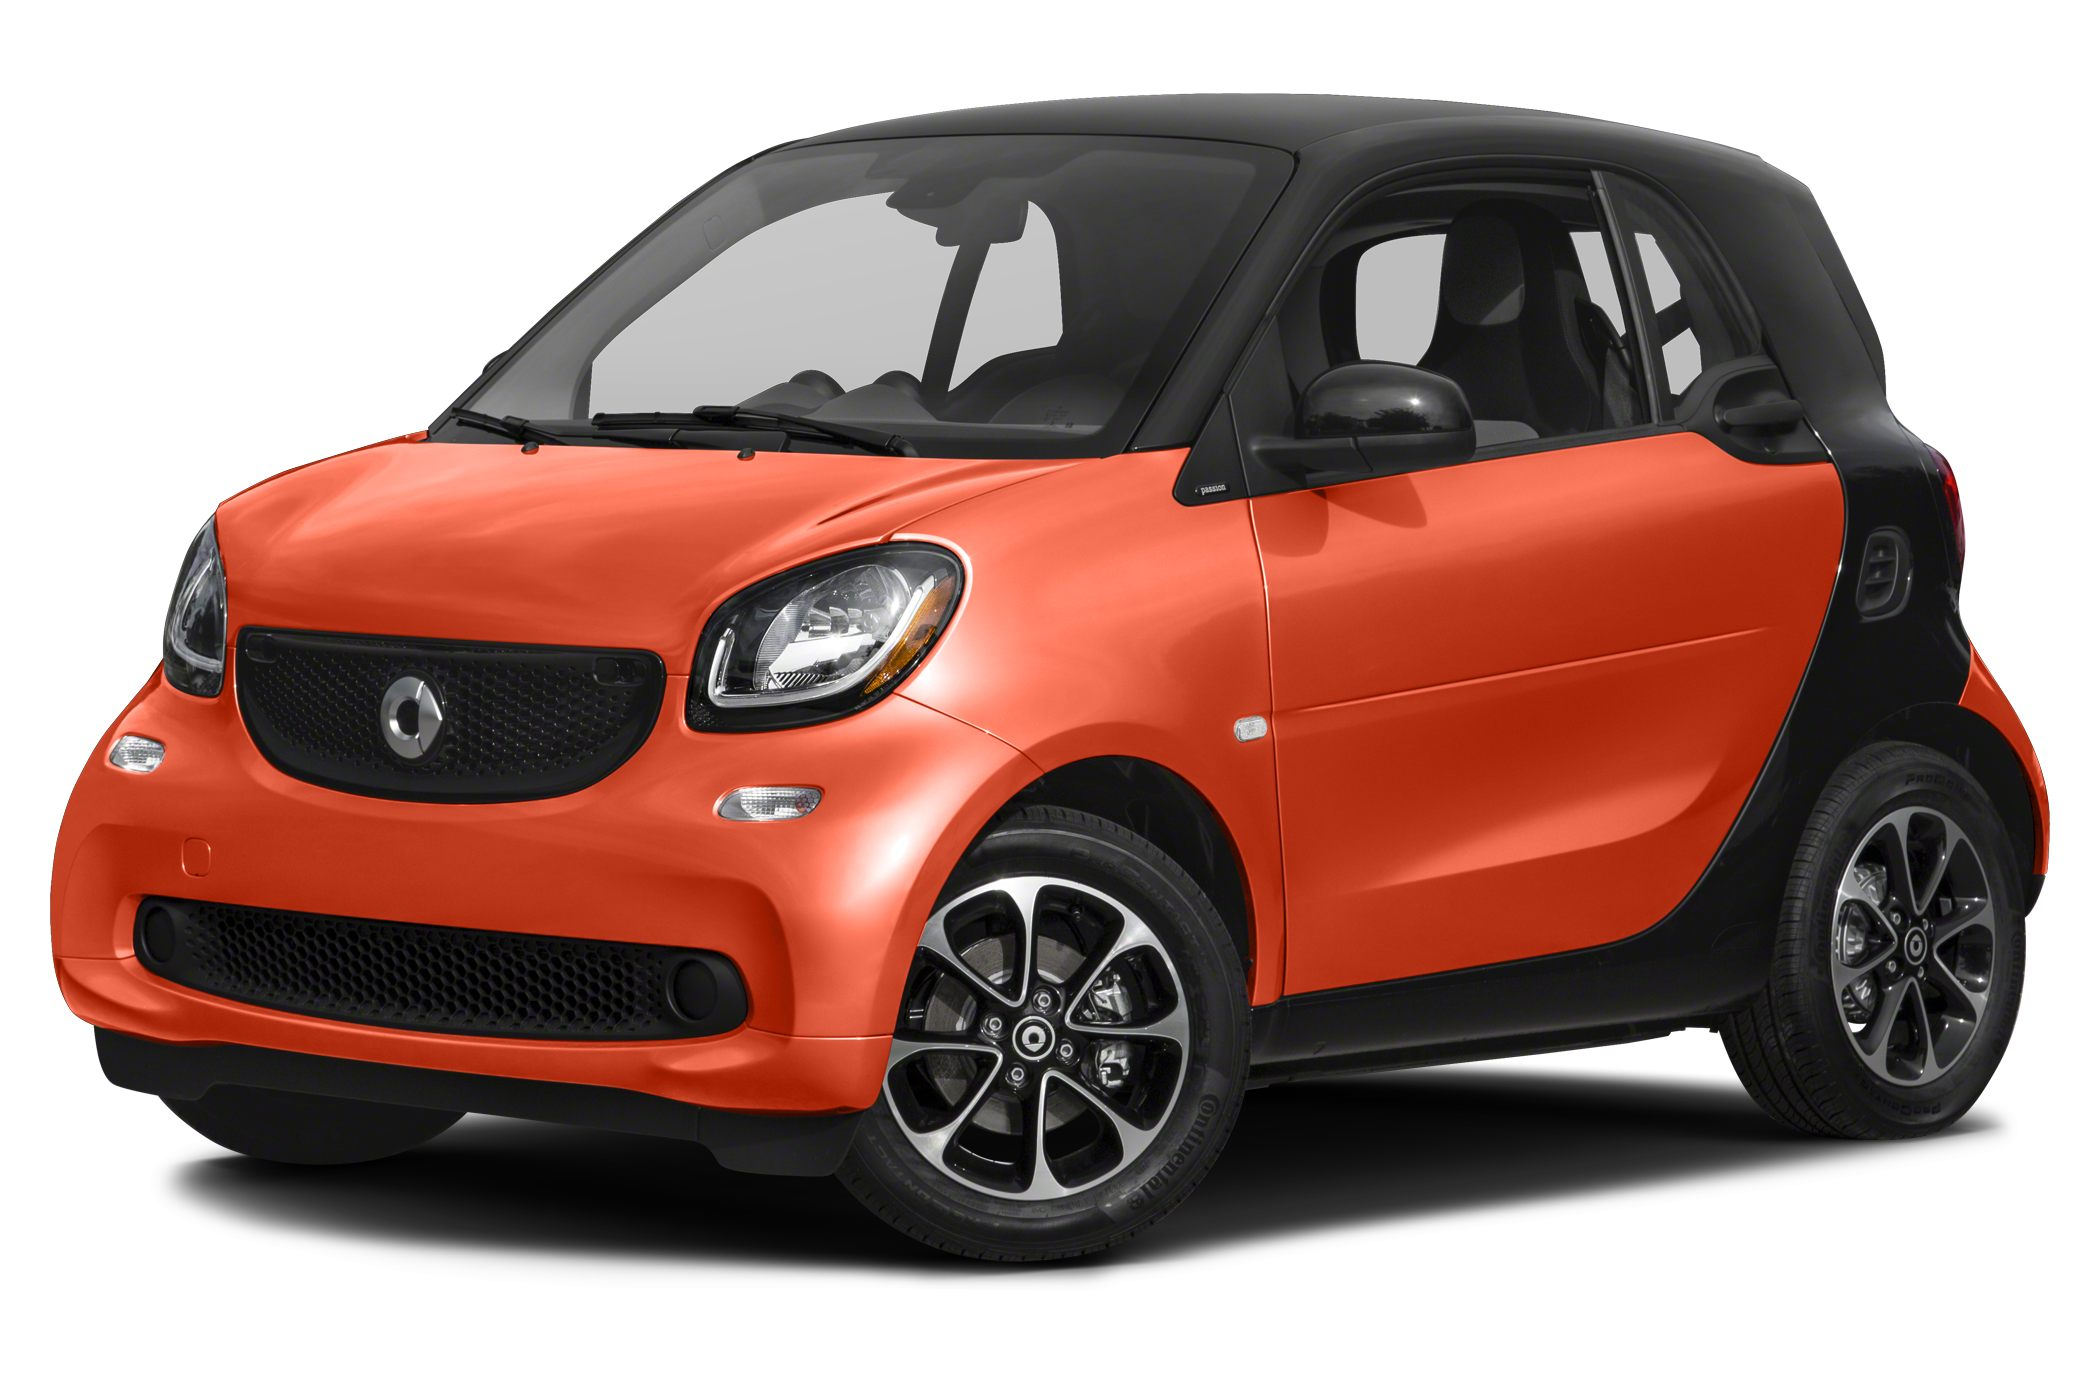 2017 Fortwo Owner Reviews